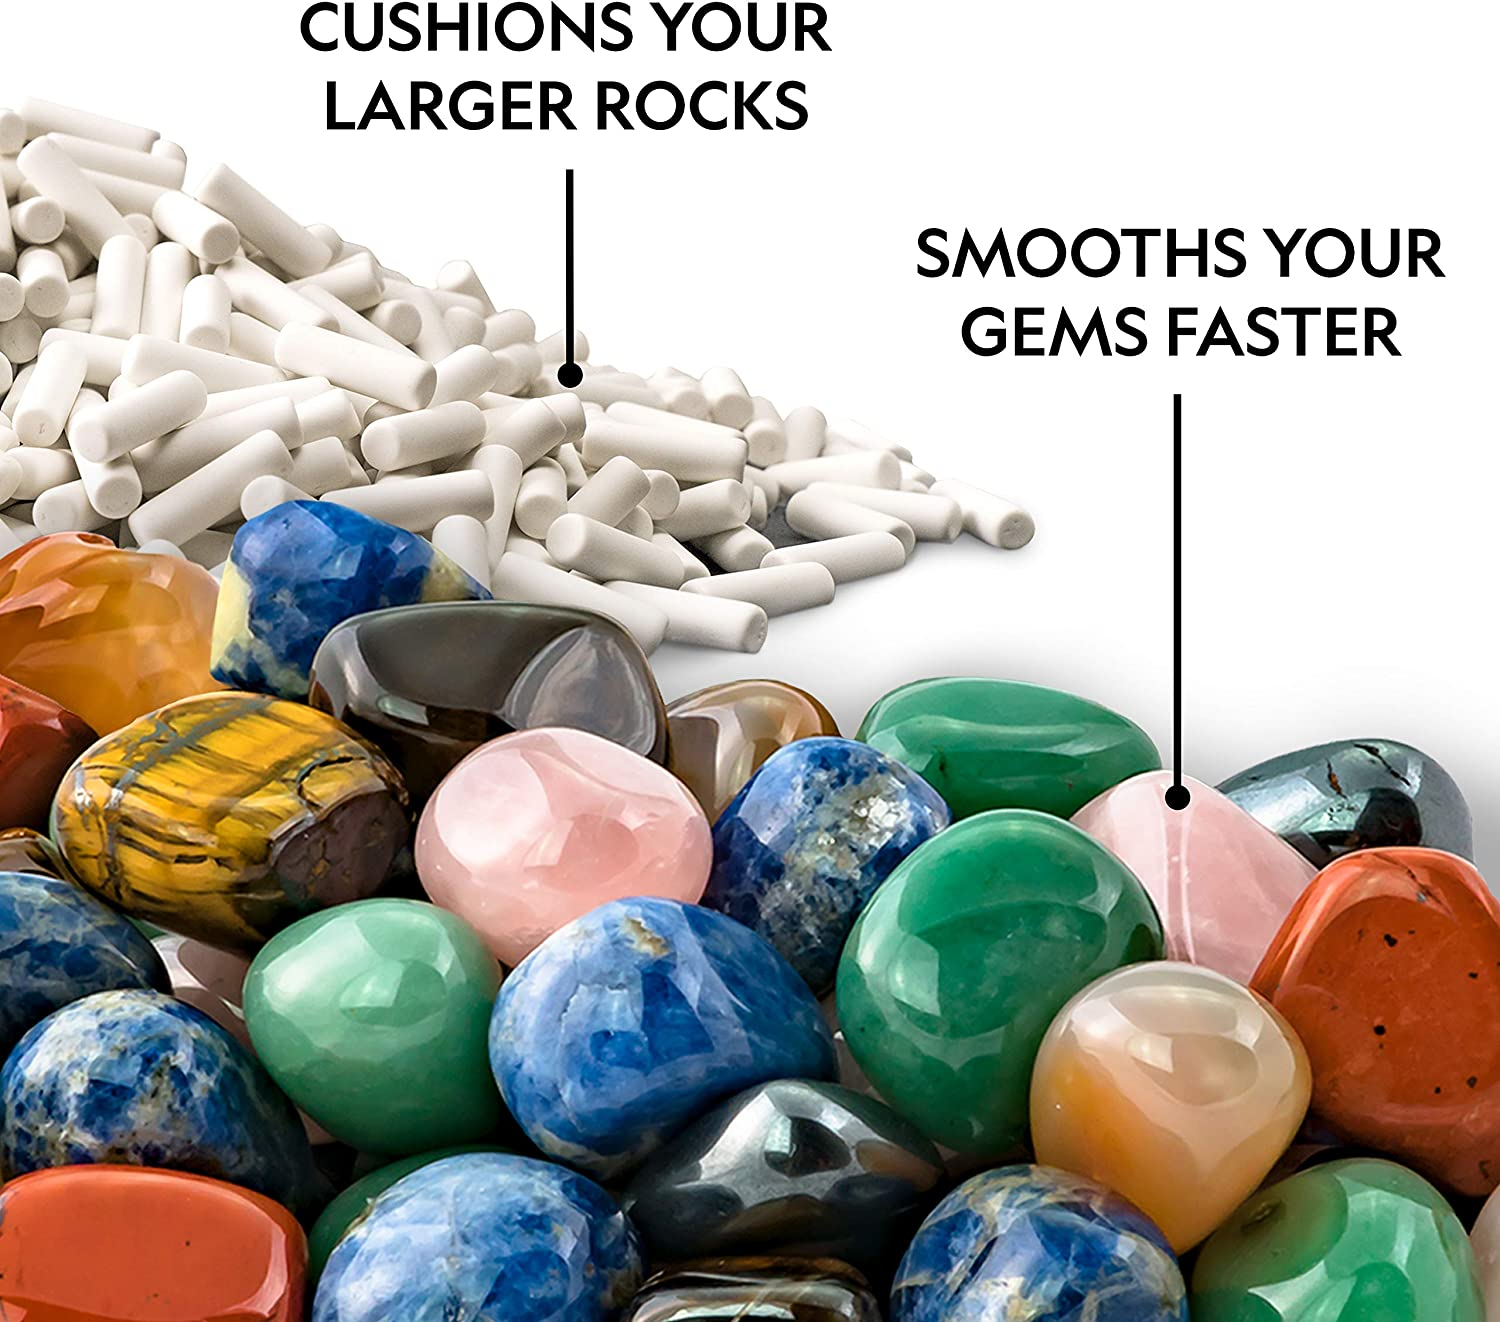 Reusable Protects Rocks NATIONAL GEOGRAPHIC Rock Tumbler Ceramic Pellets Improves Tumbling Rock Tumbling Supplies 1.5 lb Ceramic Media for Rock Polisher Use with Rock Polishing Grit